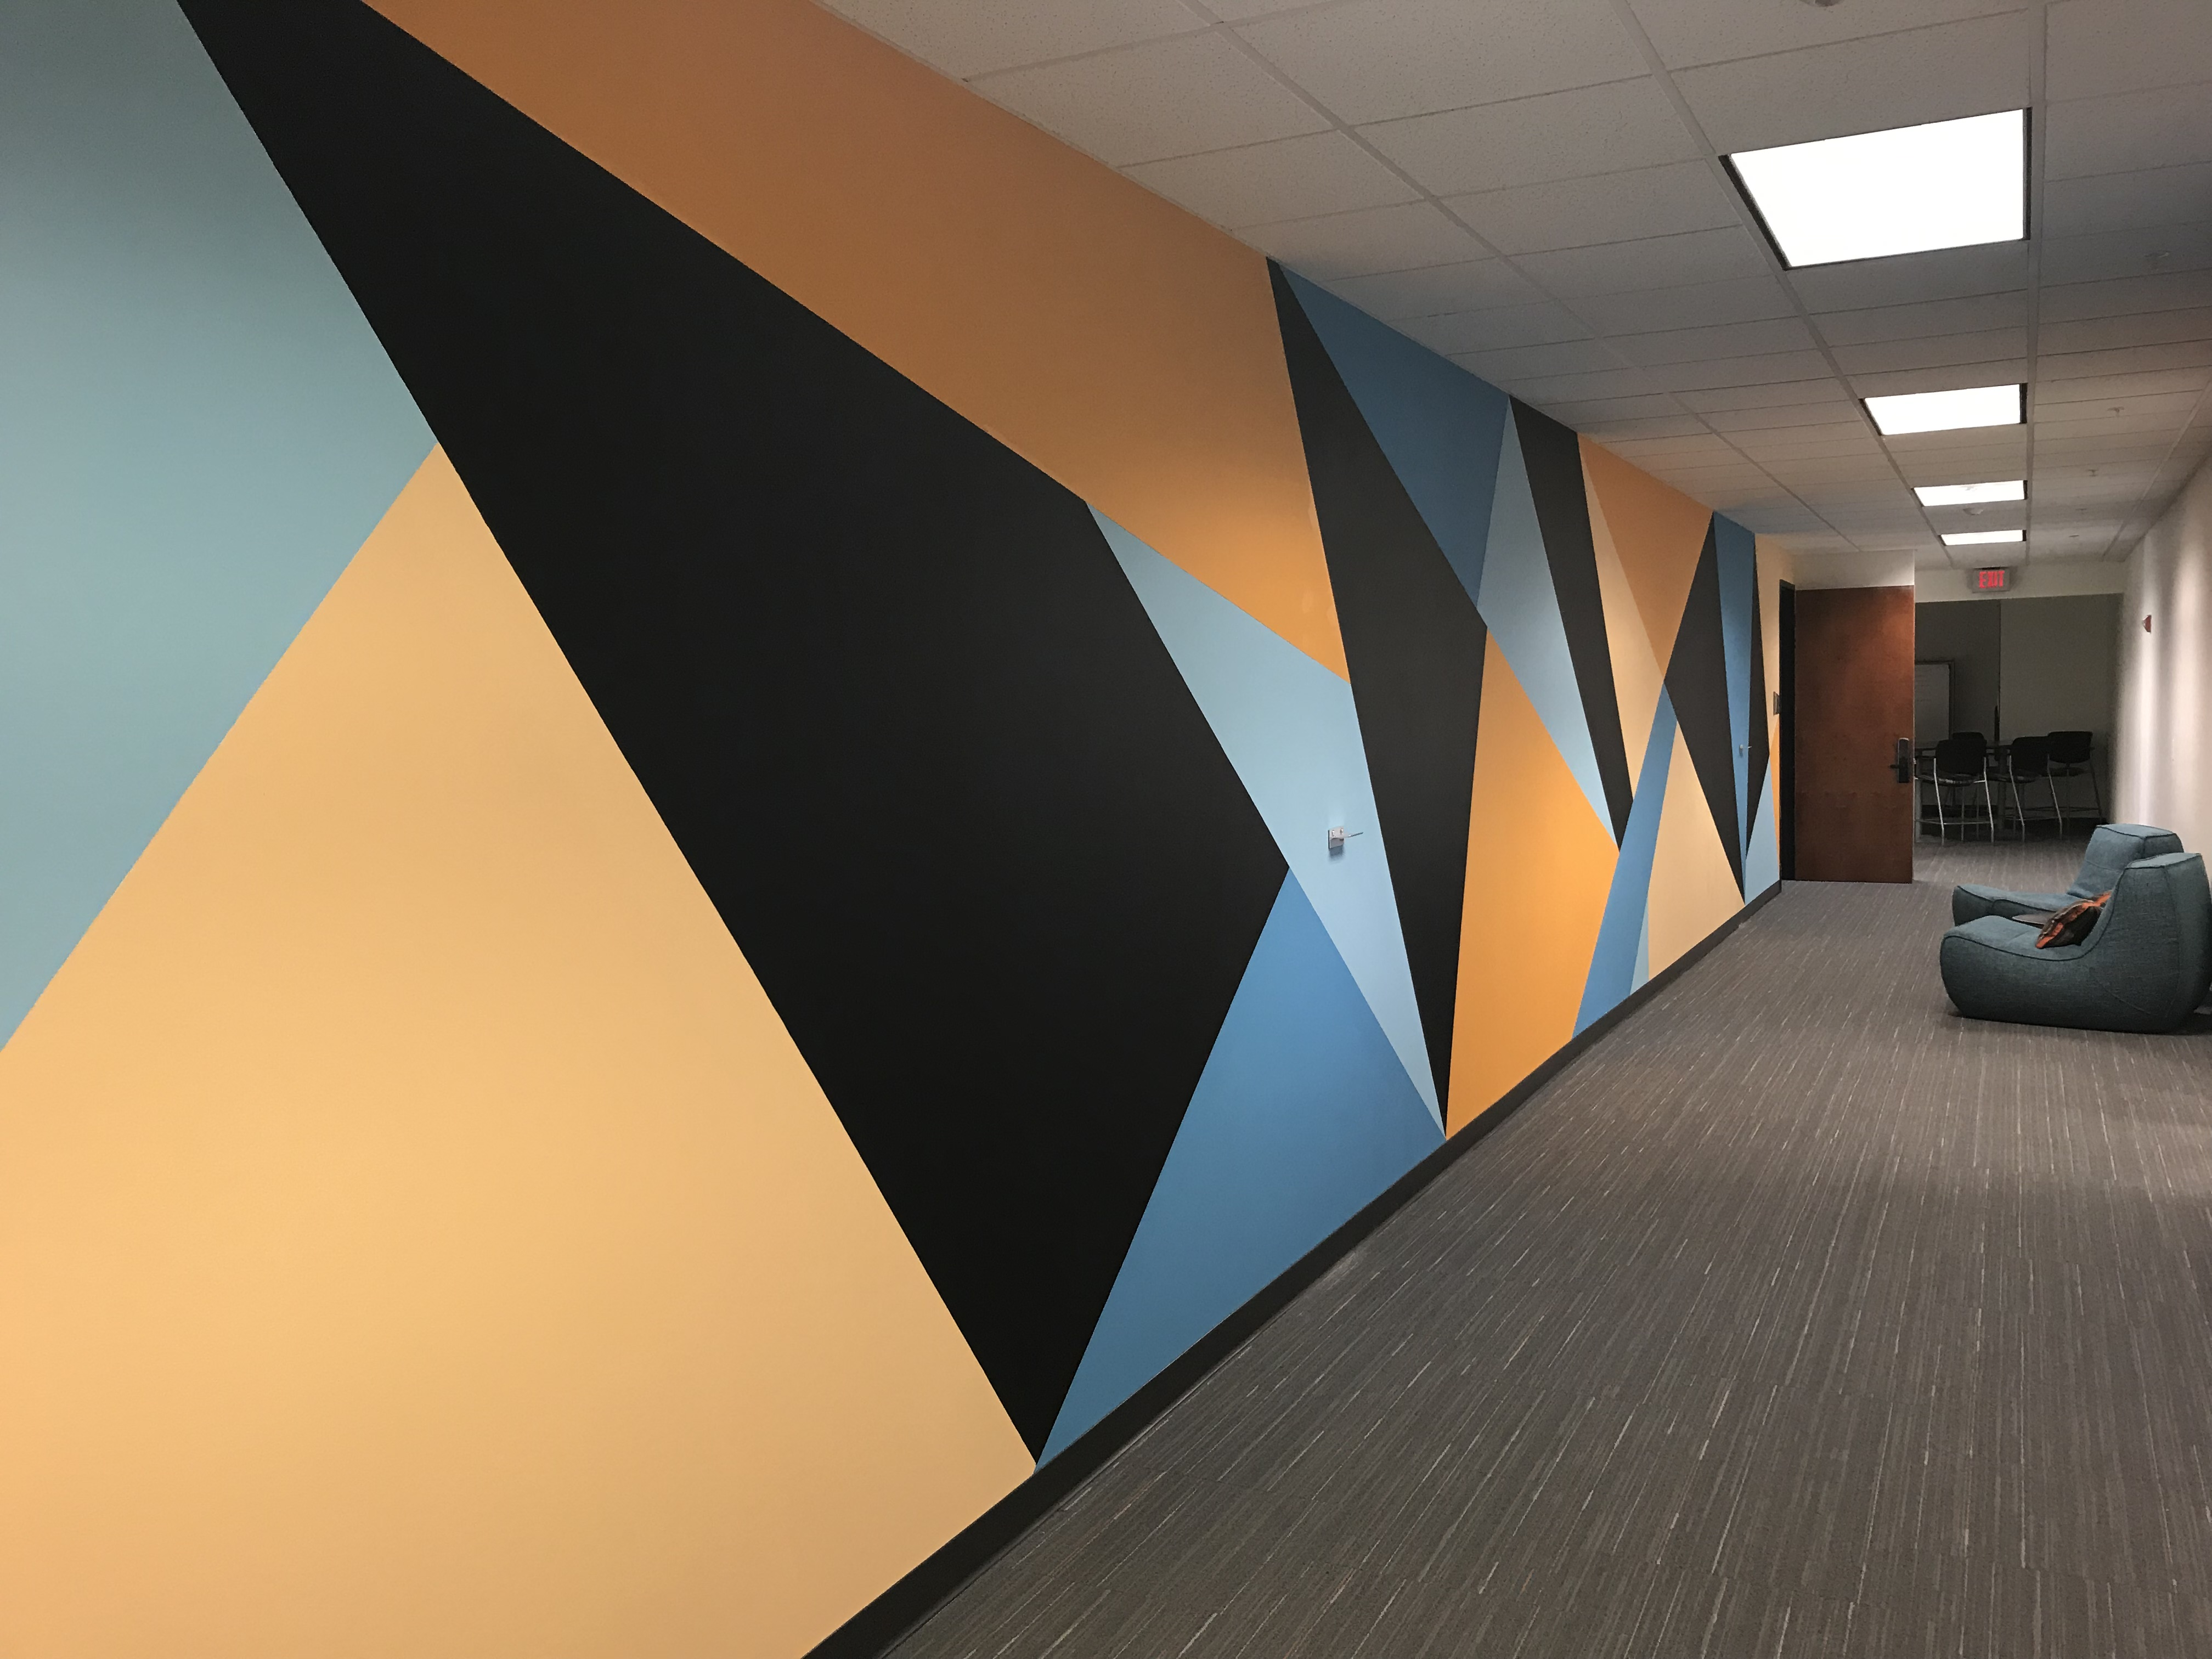 The Mural Outside the Co-Lab:  The Co-Lab space has a variety of co-working desks, whiteboards, conference rooms, event spaces and soft seating areas to fit your needs.